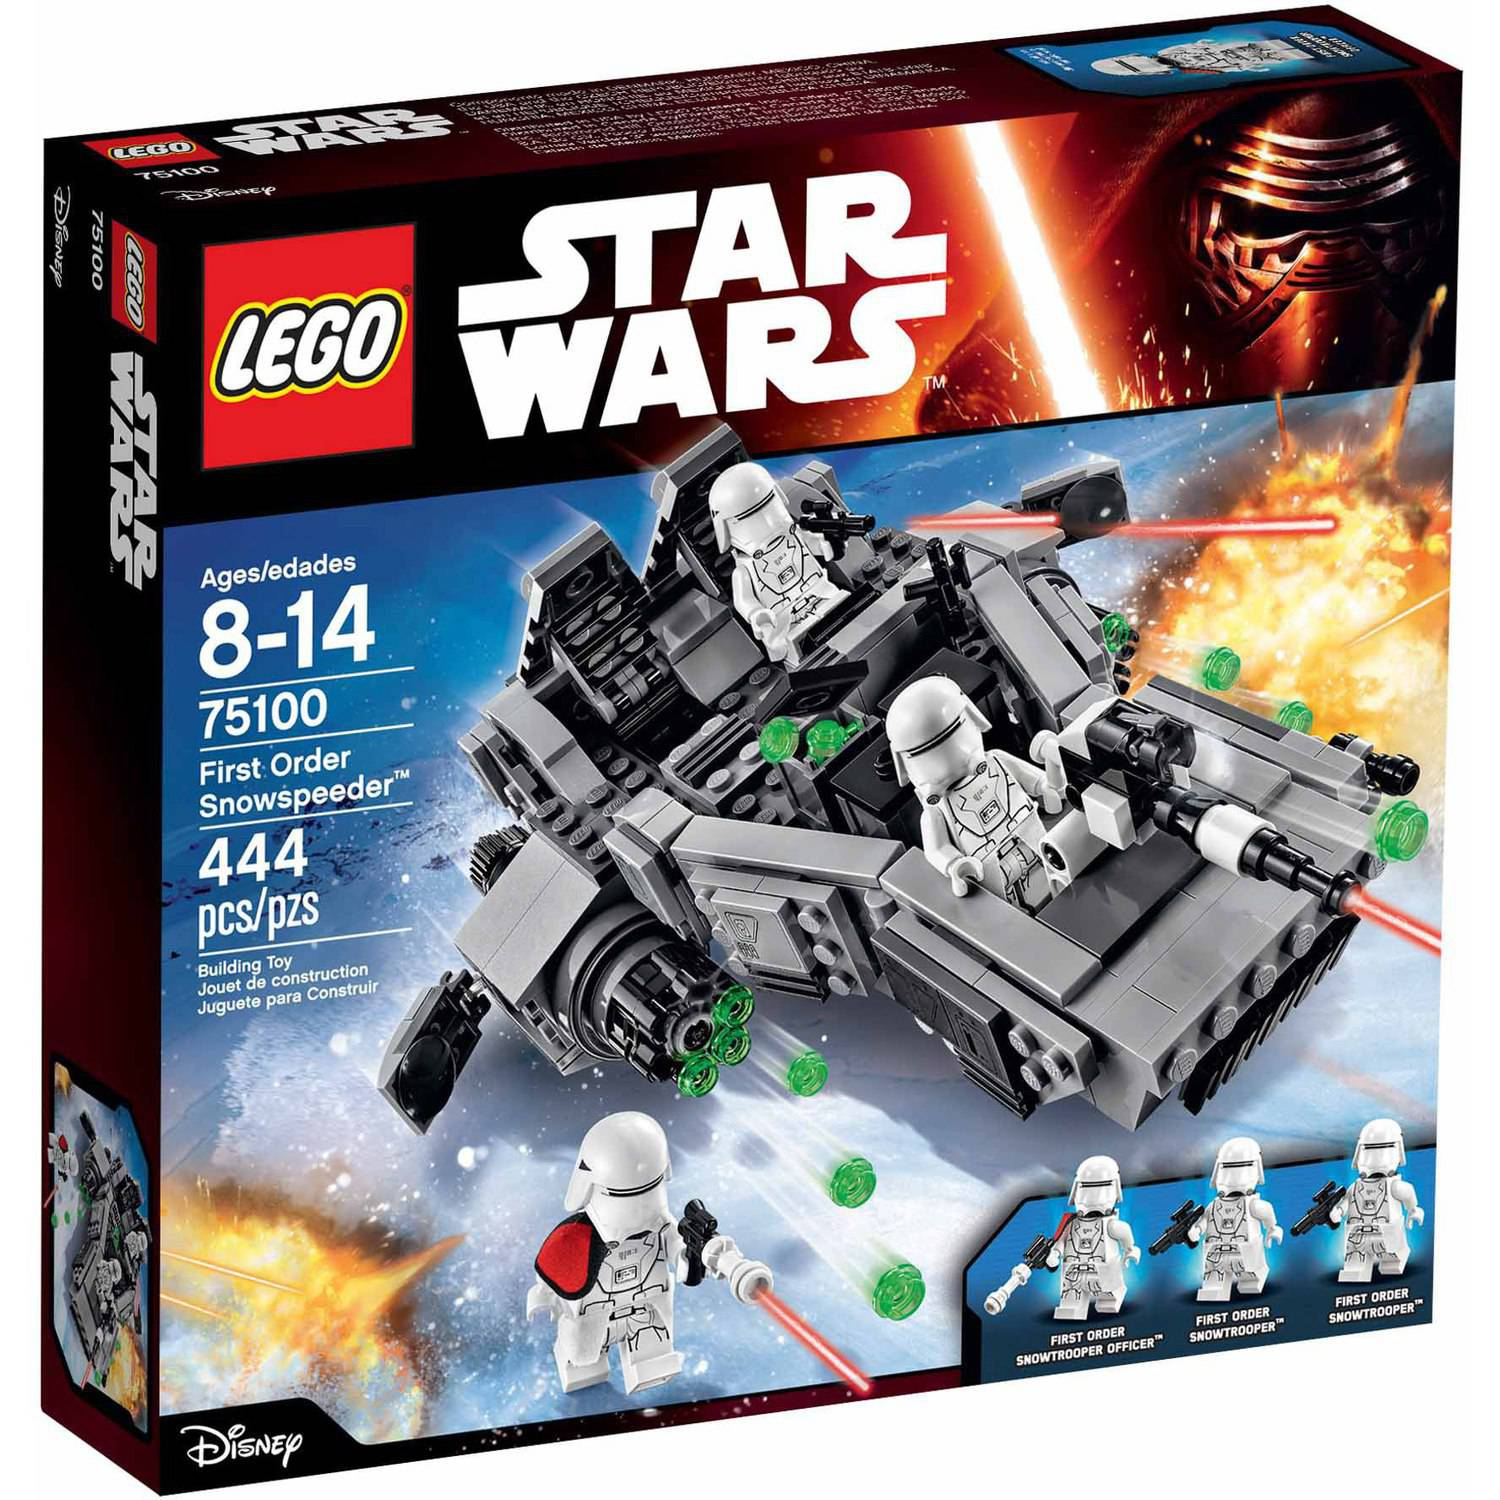 "LEGO Star Wars First Order Snowspeeder"" 75100"